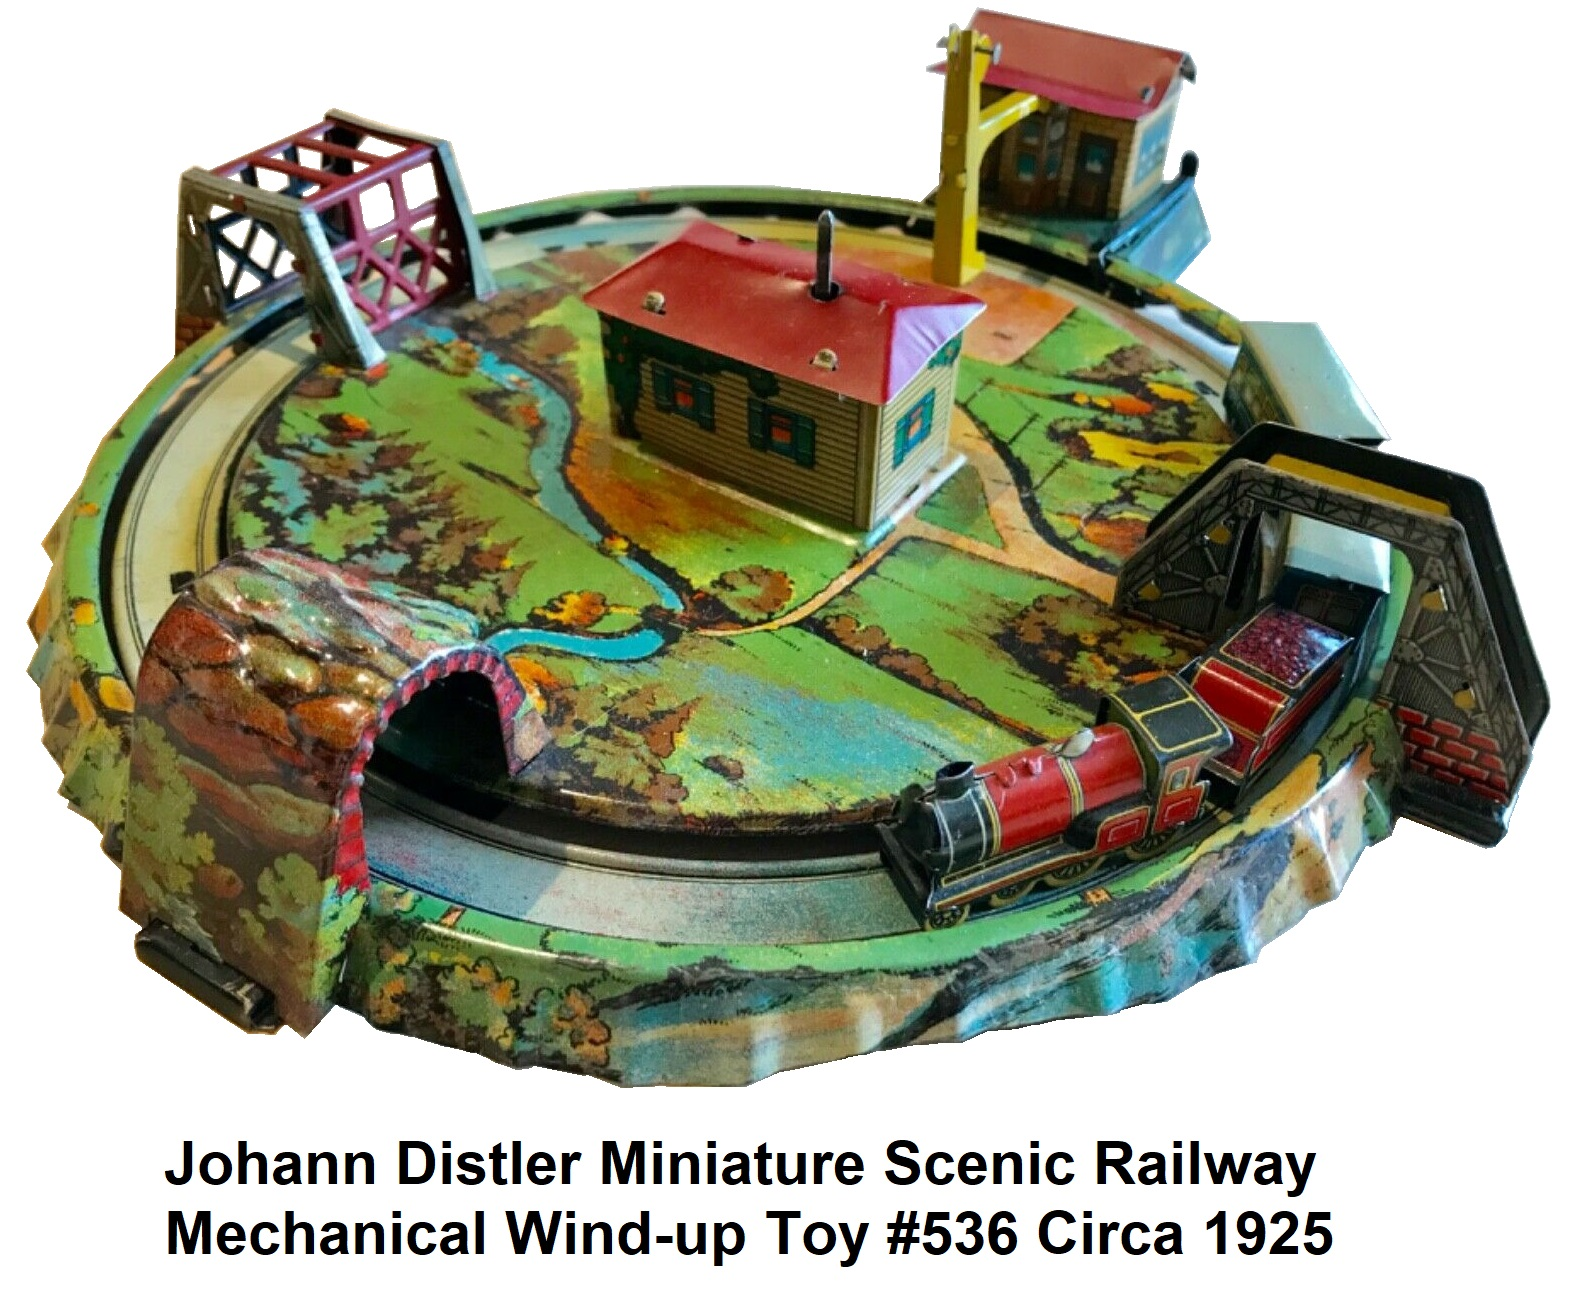 Johann Distler Miniature Scenic Railway mechanical toy #536 circa 1925